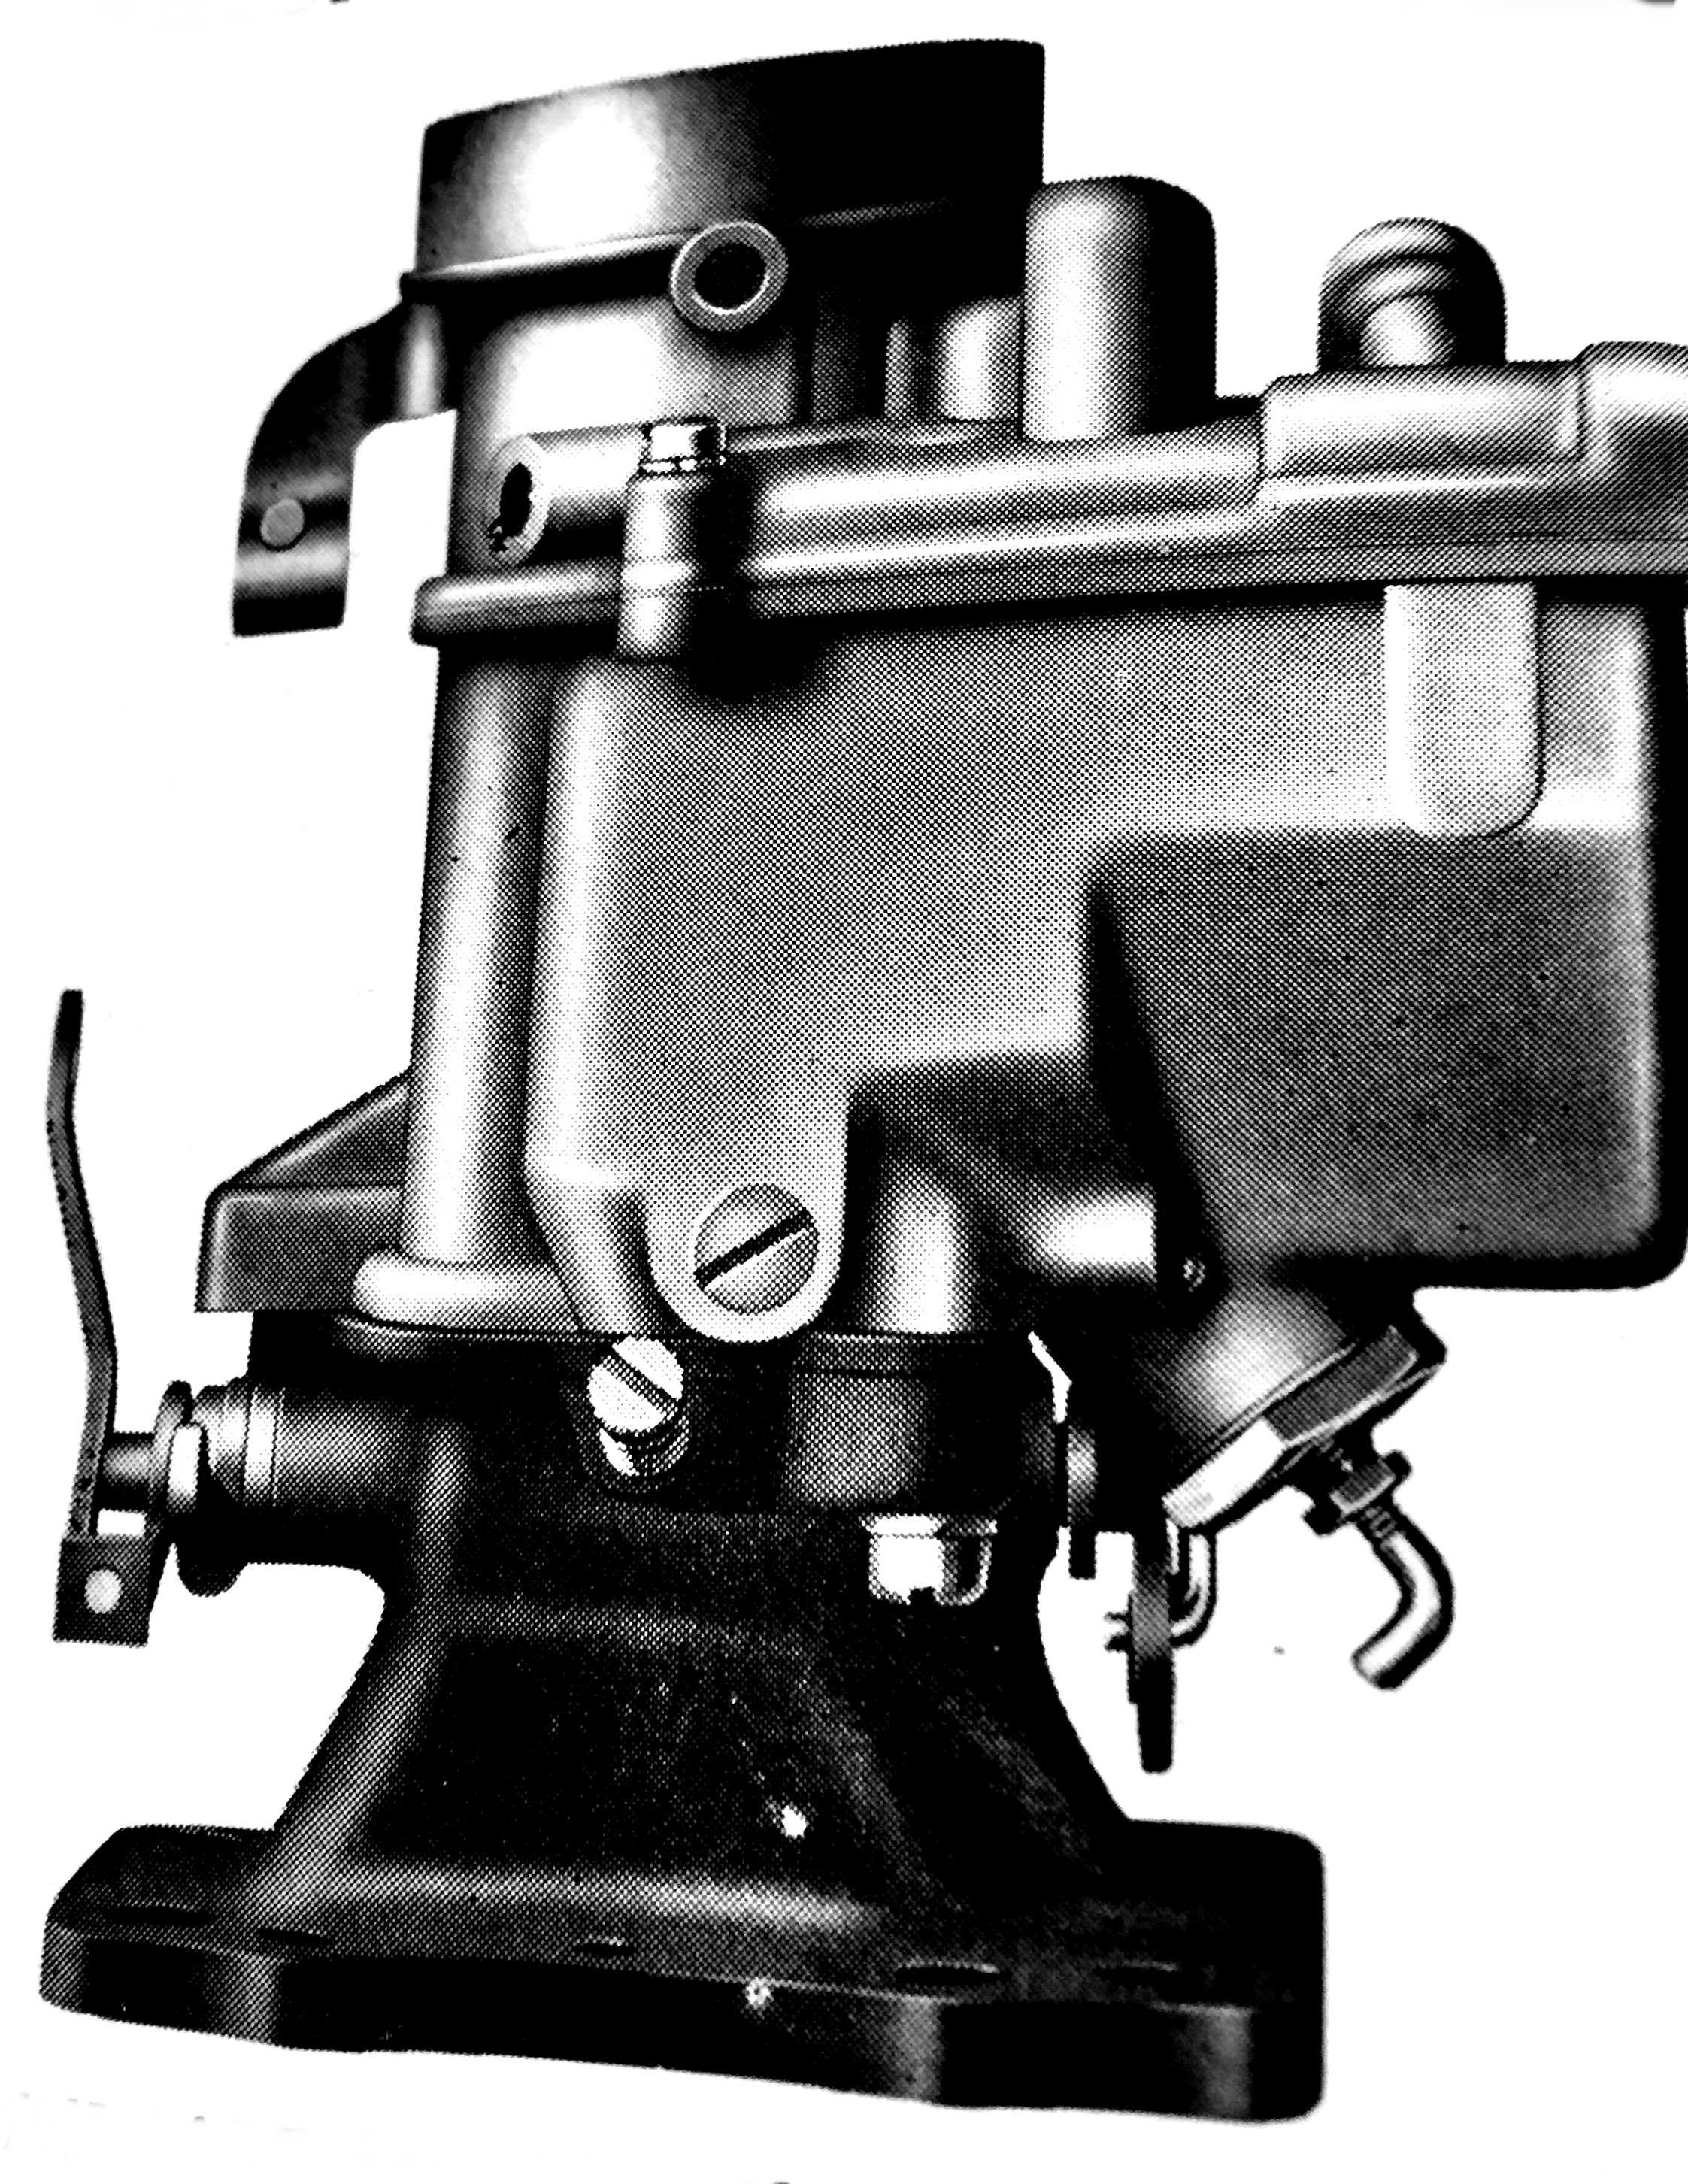 Marvel Schebler Carburetor Types - Mikes Carburetor Parts